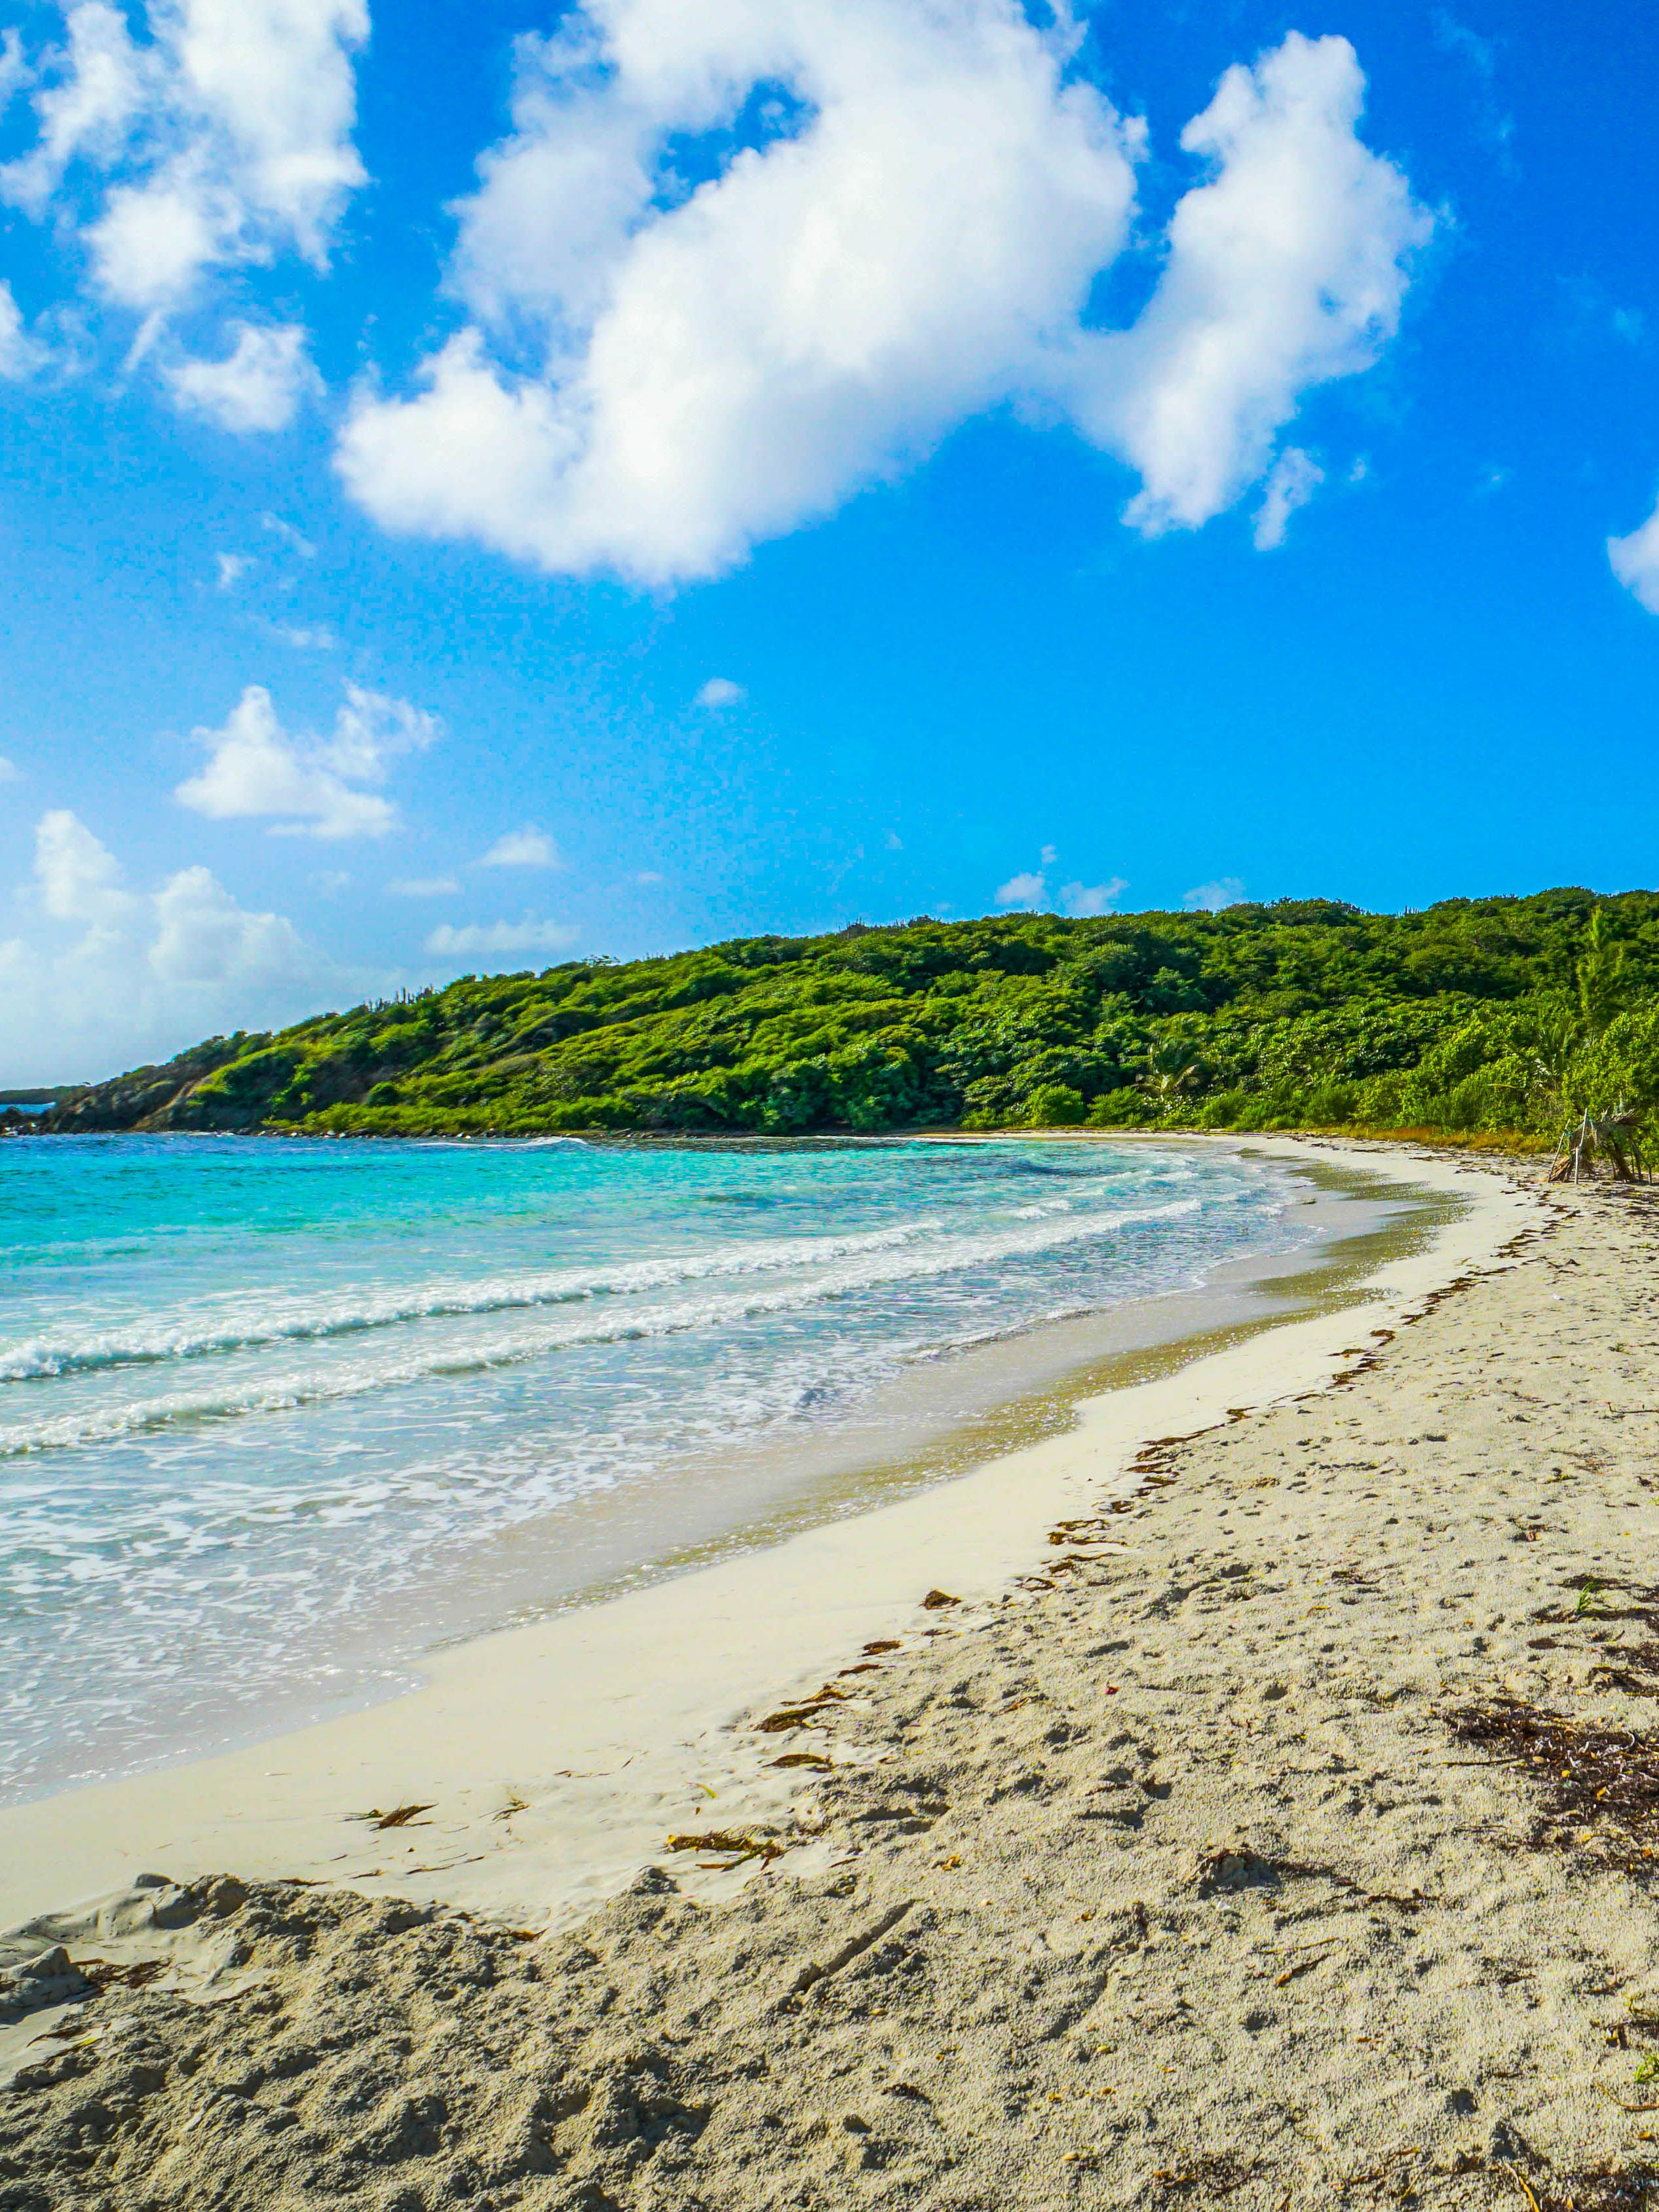 9 Of The Best Puerto Rican Beaches To Visit On The Island Of